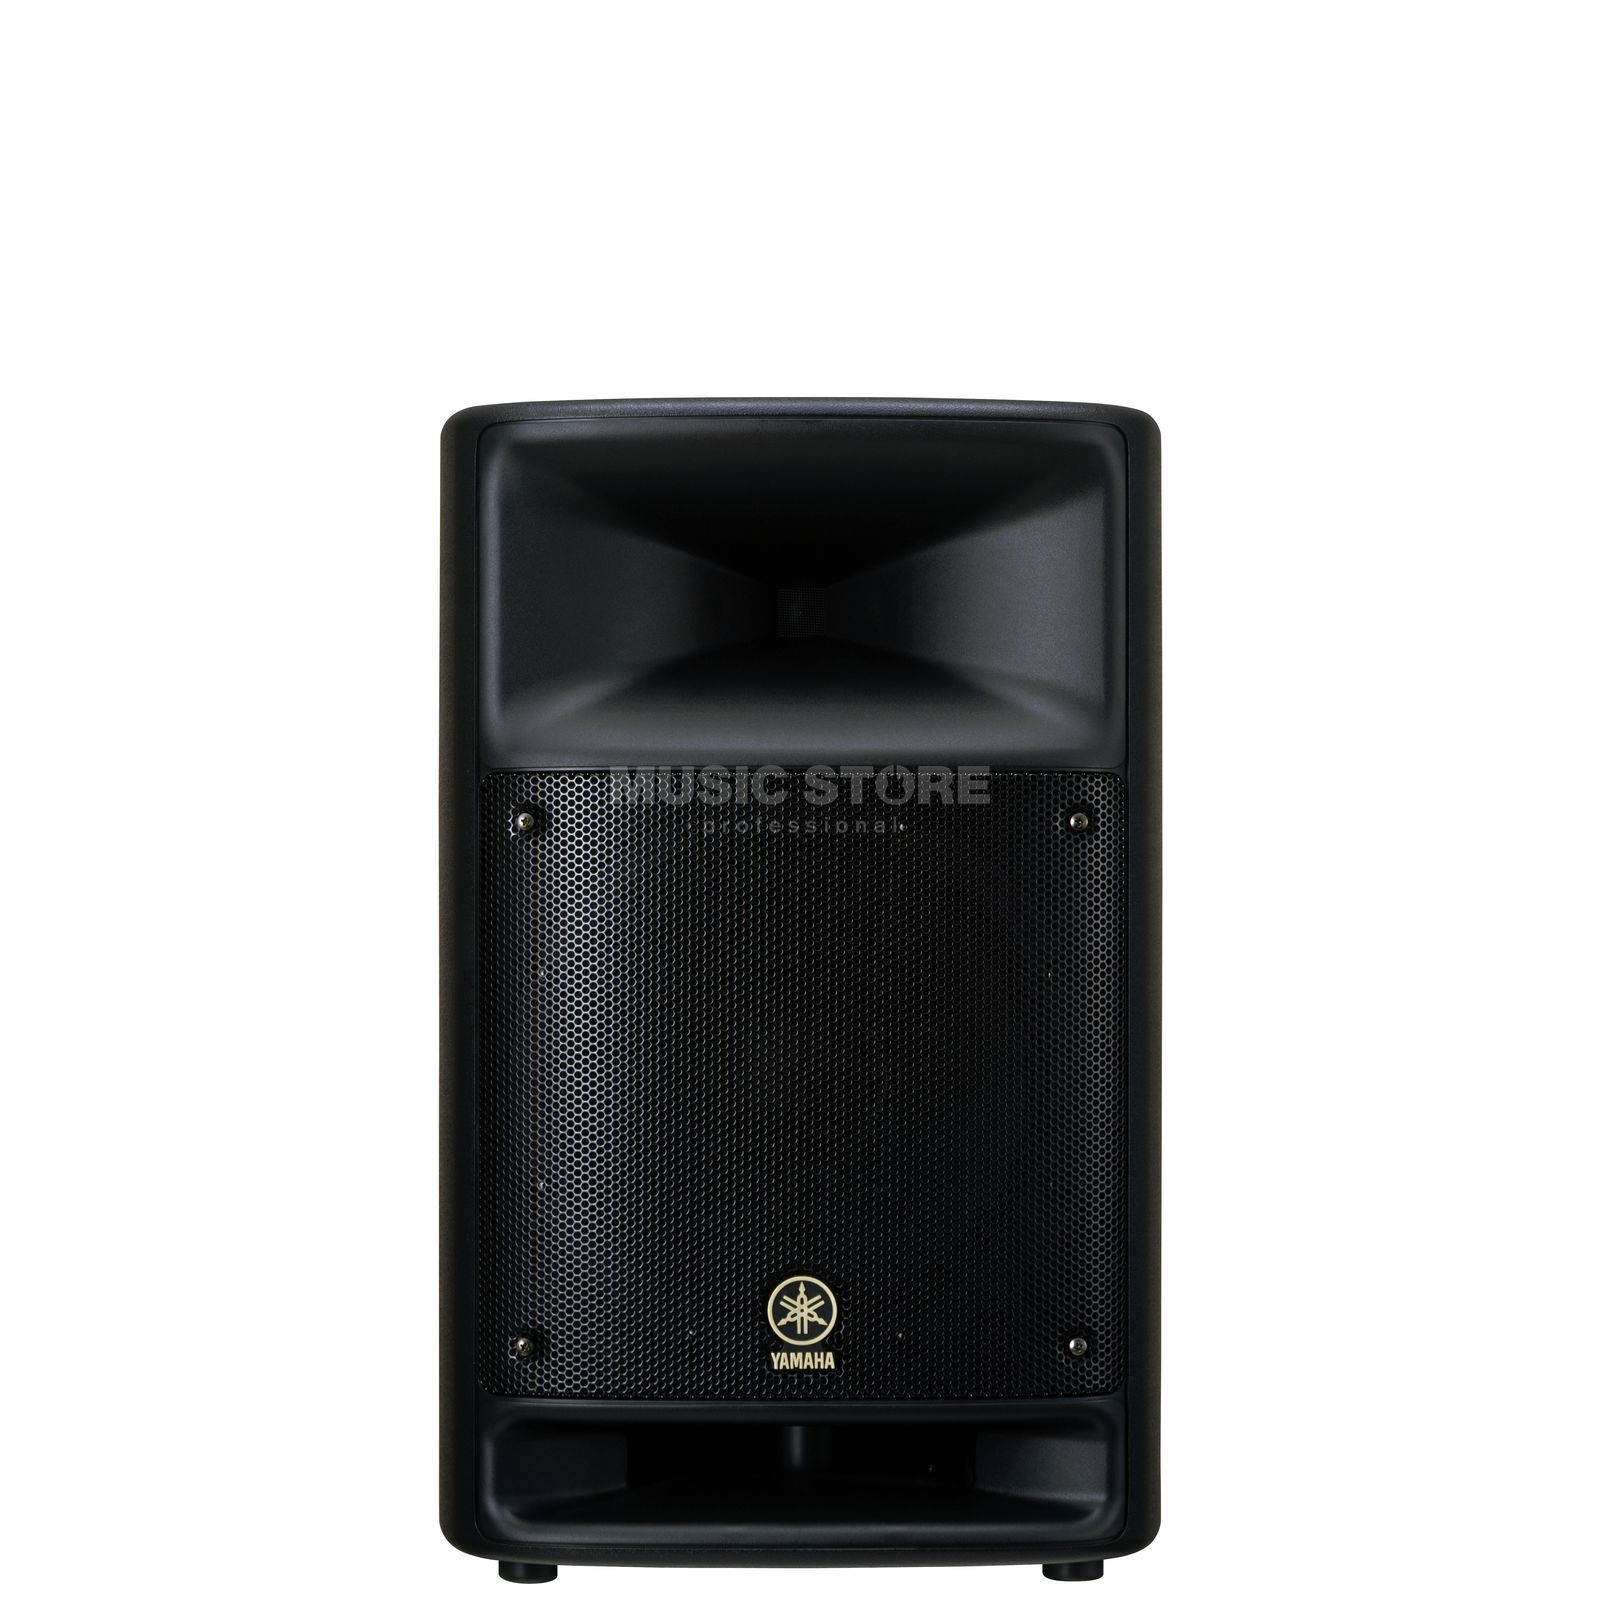 Yamaha MSR250 ActivePA / Installation / Monitor speaker Product Image